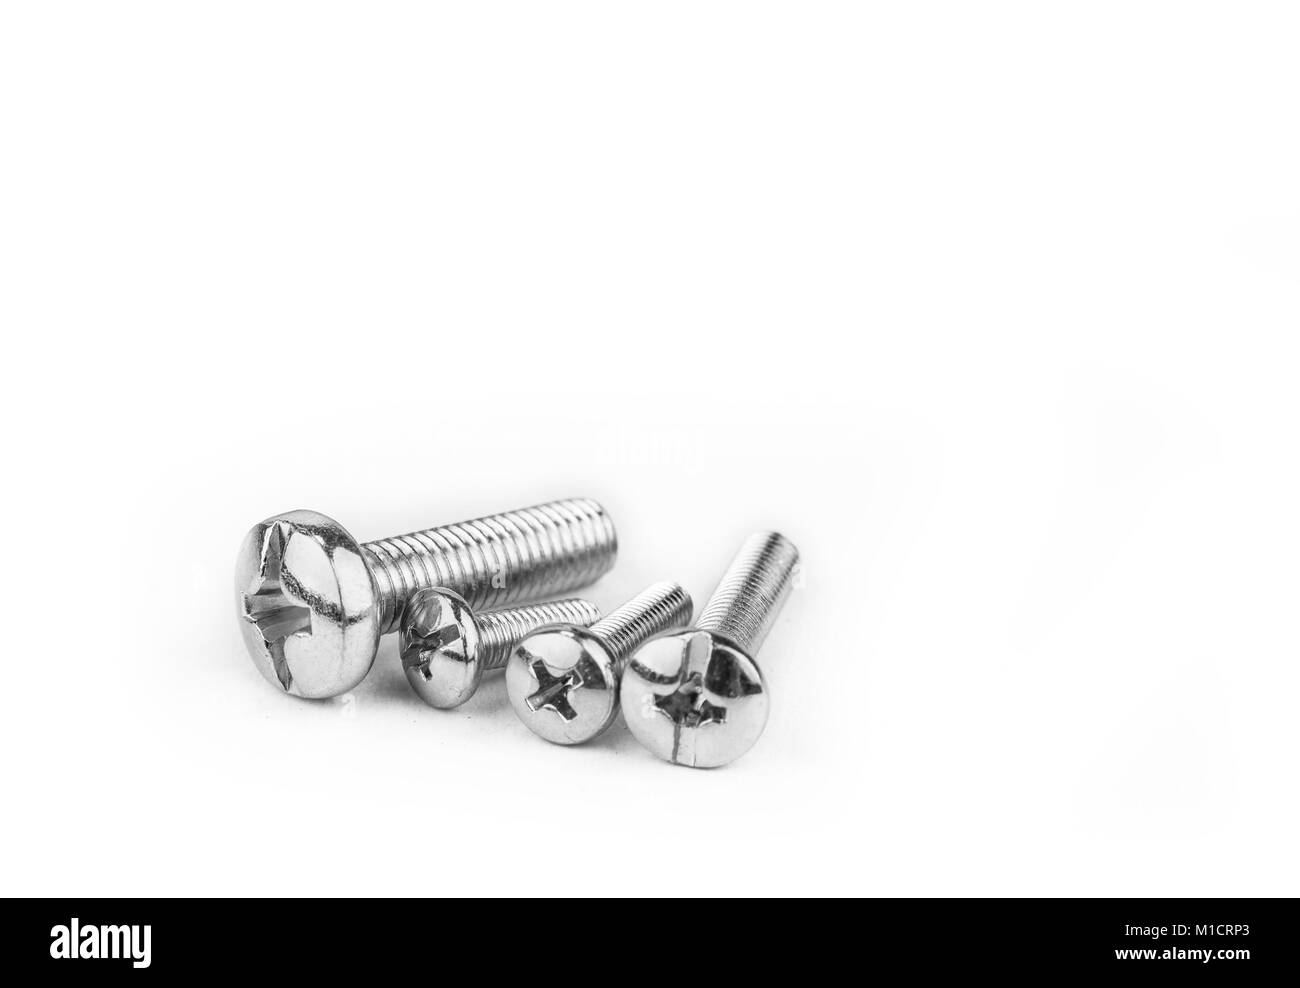 Screws and bolts for construction on the white background - Stock Image